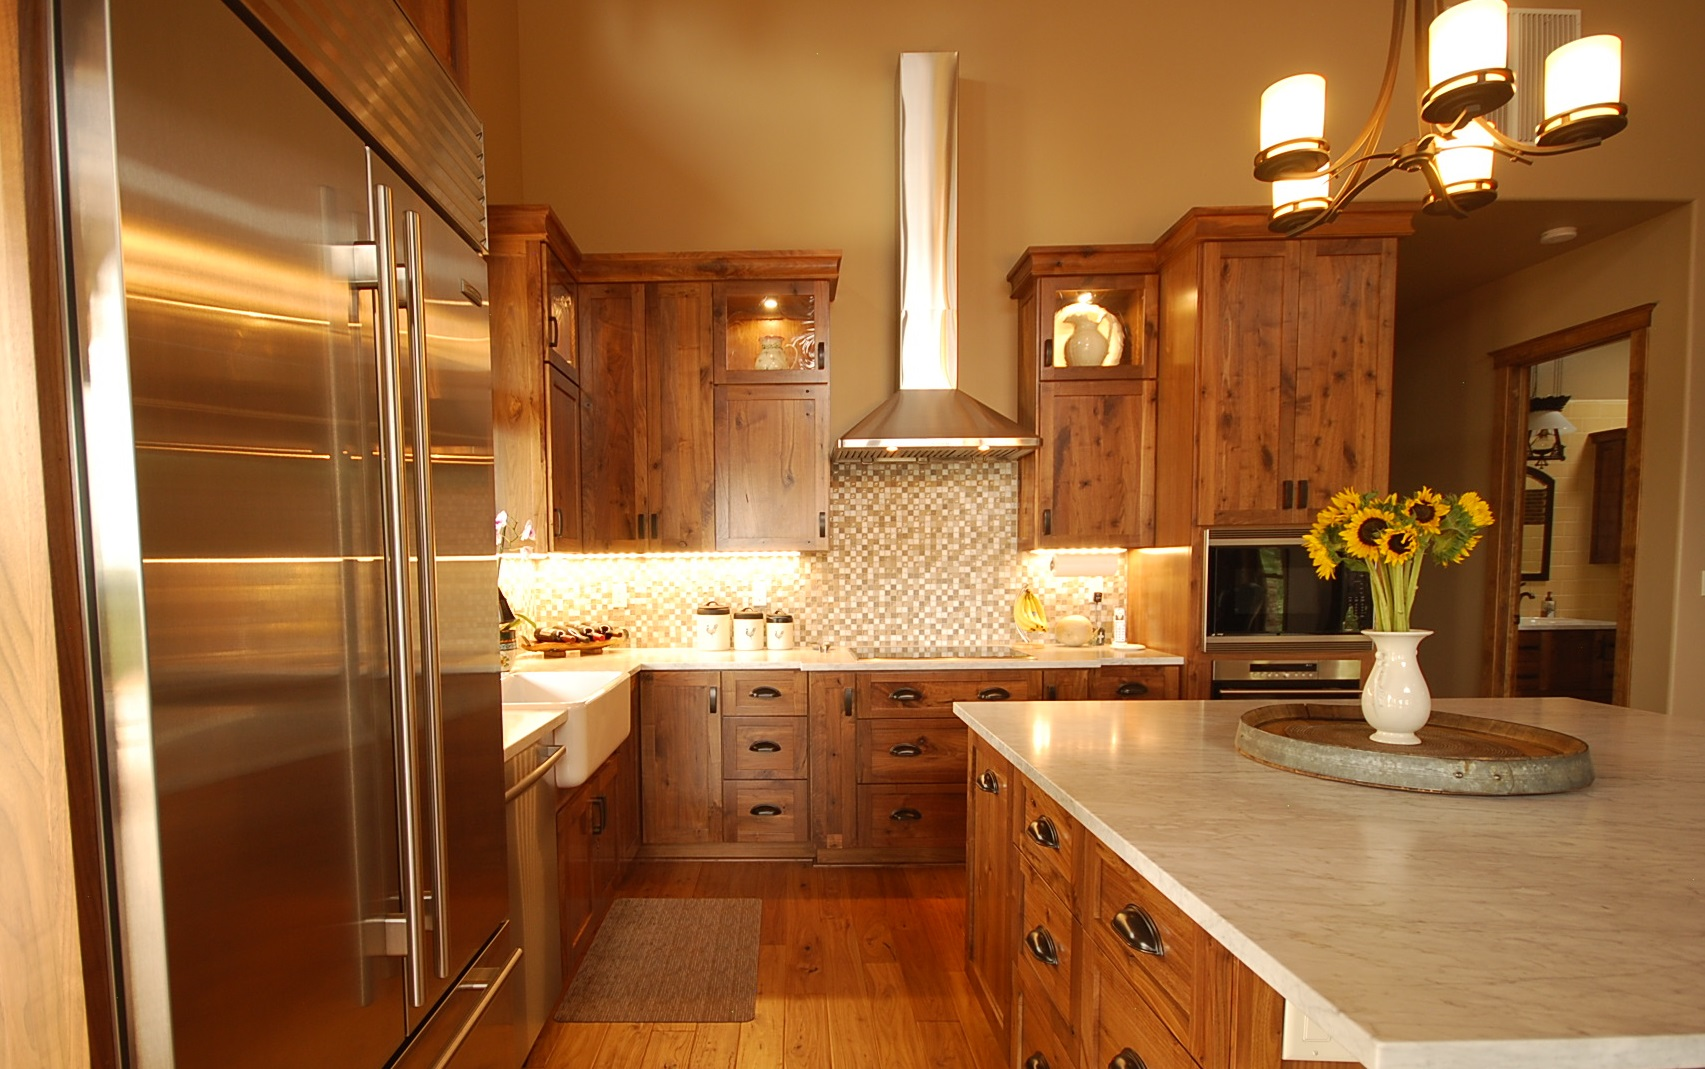 custom kitchen cabinets designs. Local Custom Built Rustic Walnut Cabinets And Calacatta Marble Counters With Oil Rubbed Bronze Drawer Pulls Kitchen Designs N